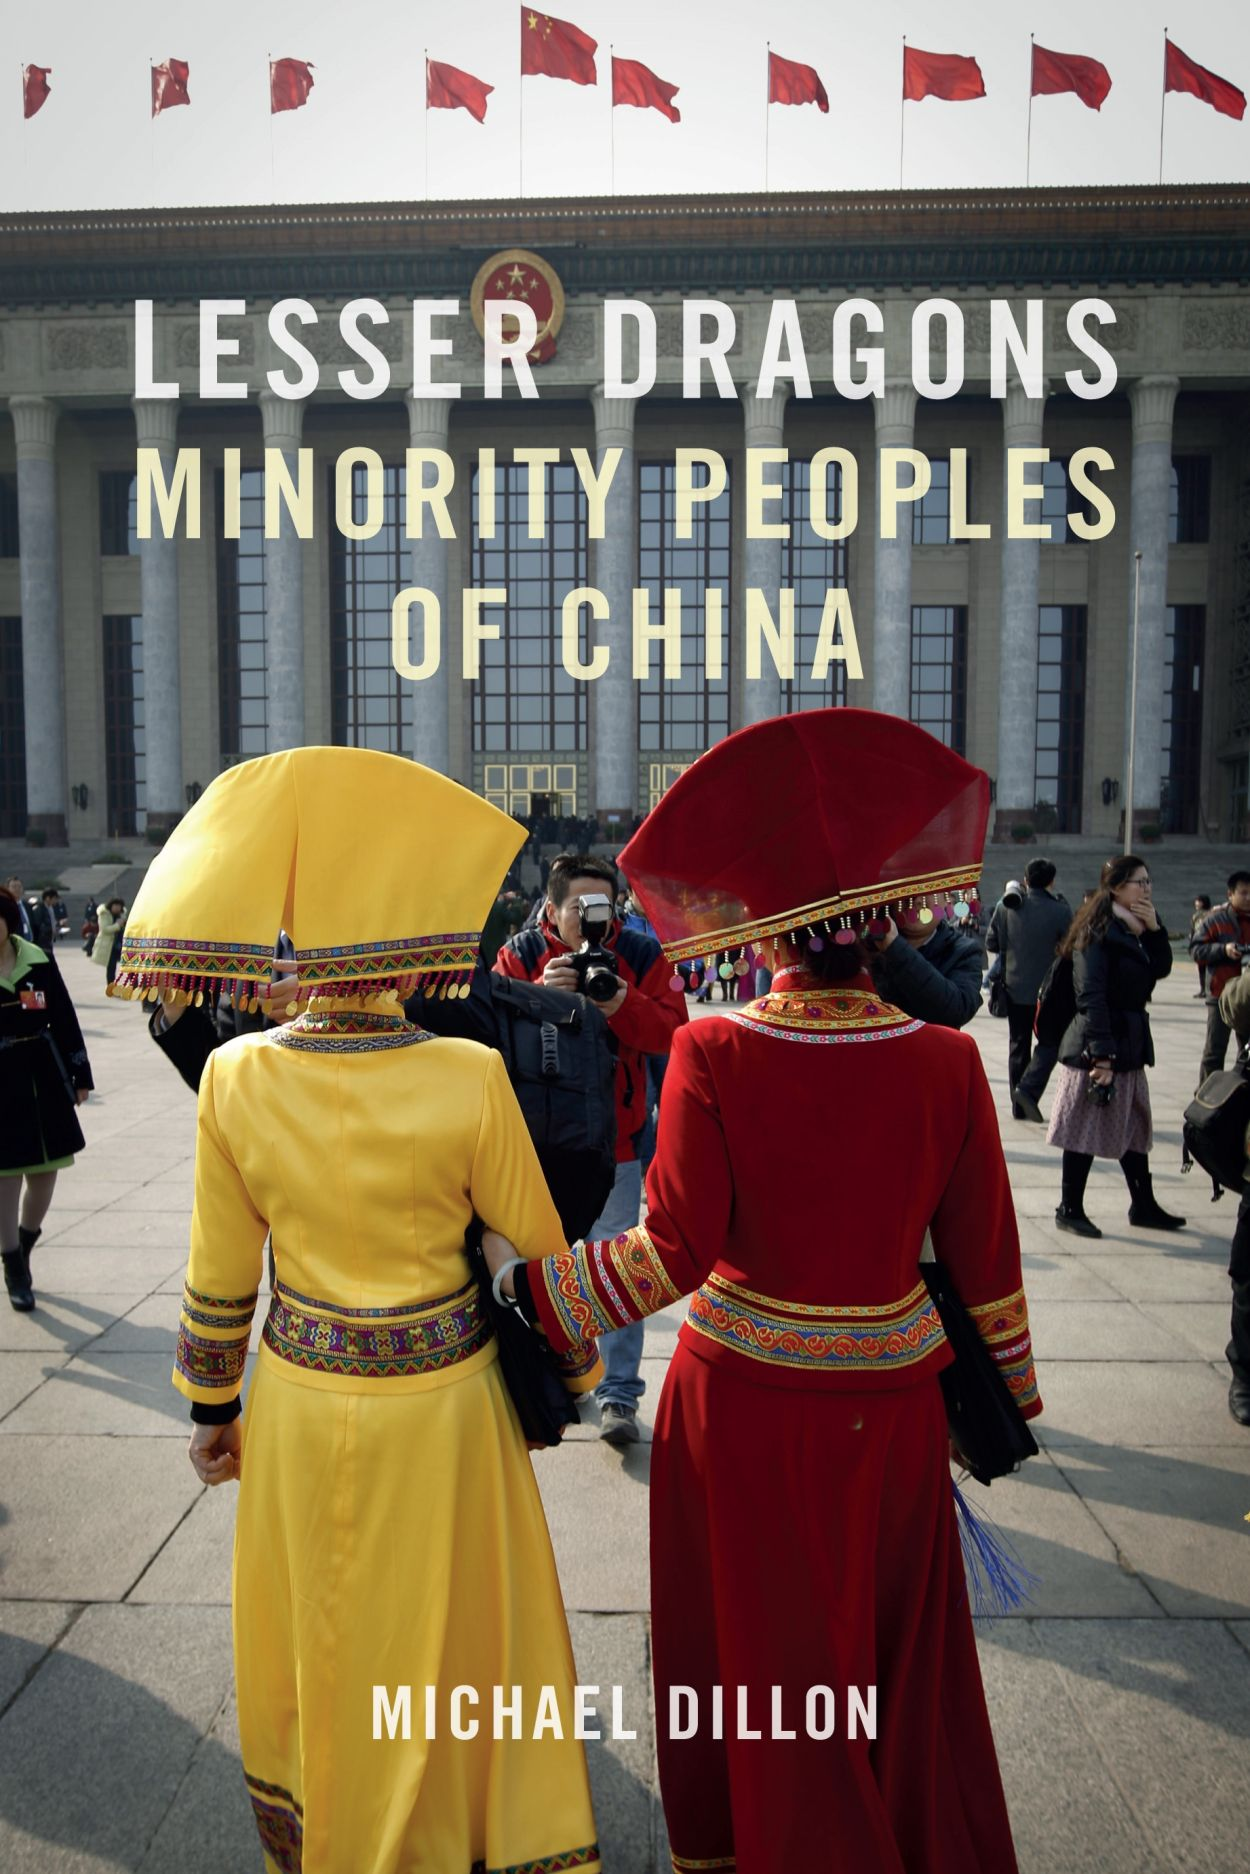 Lesser Dragons: Minority Peoples of China